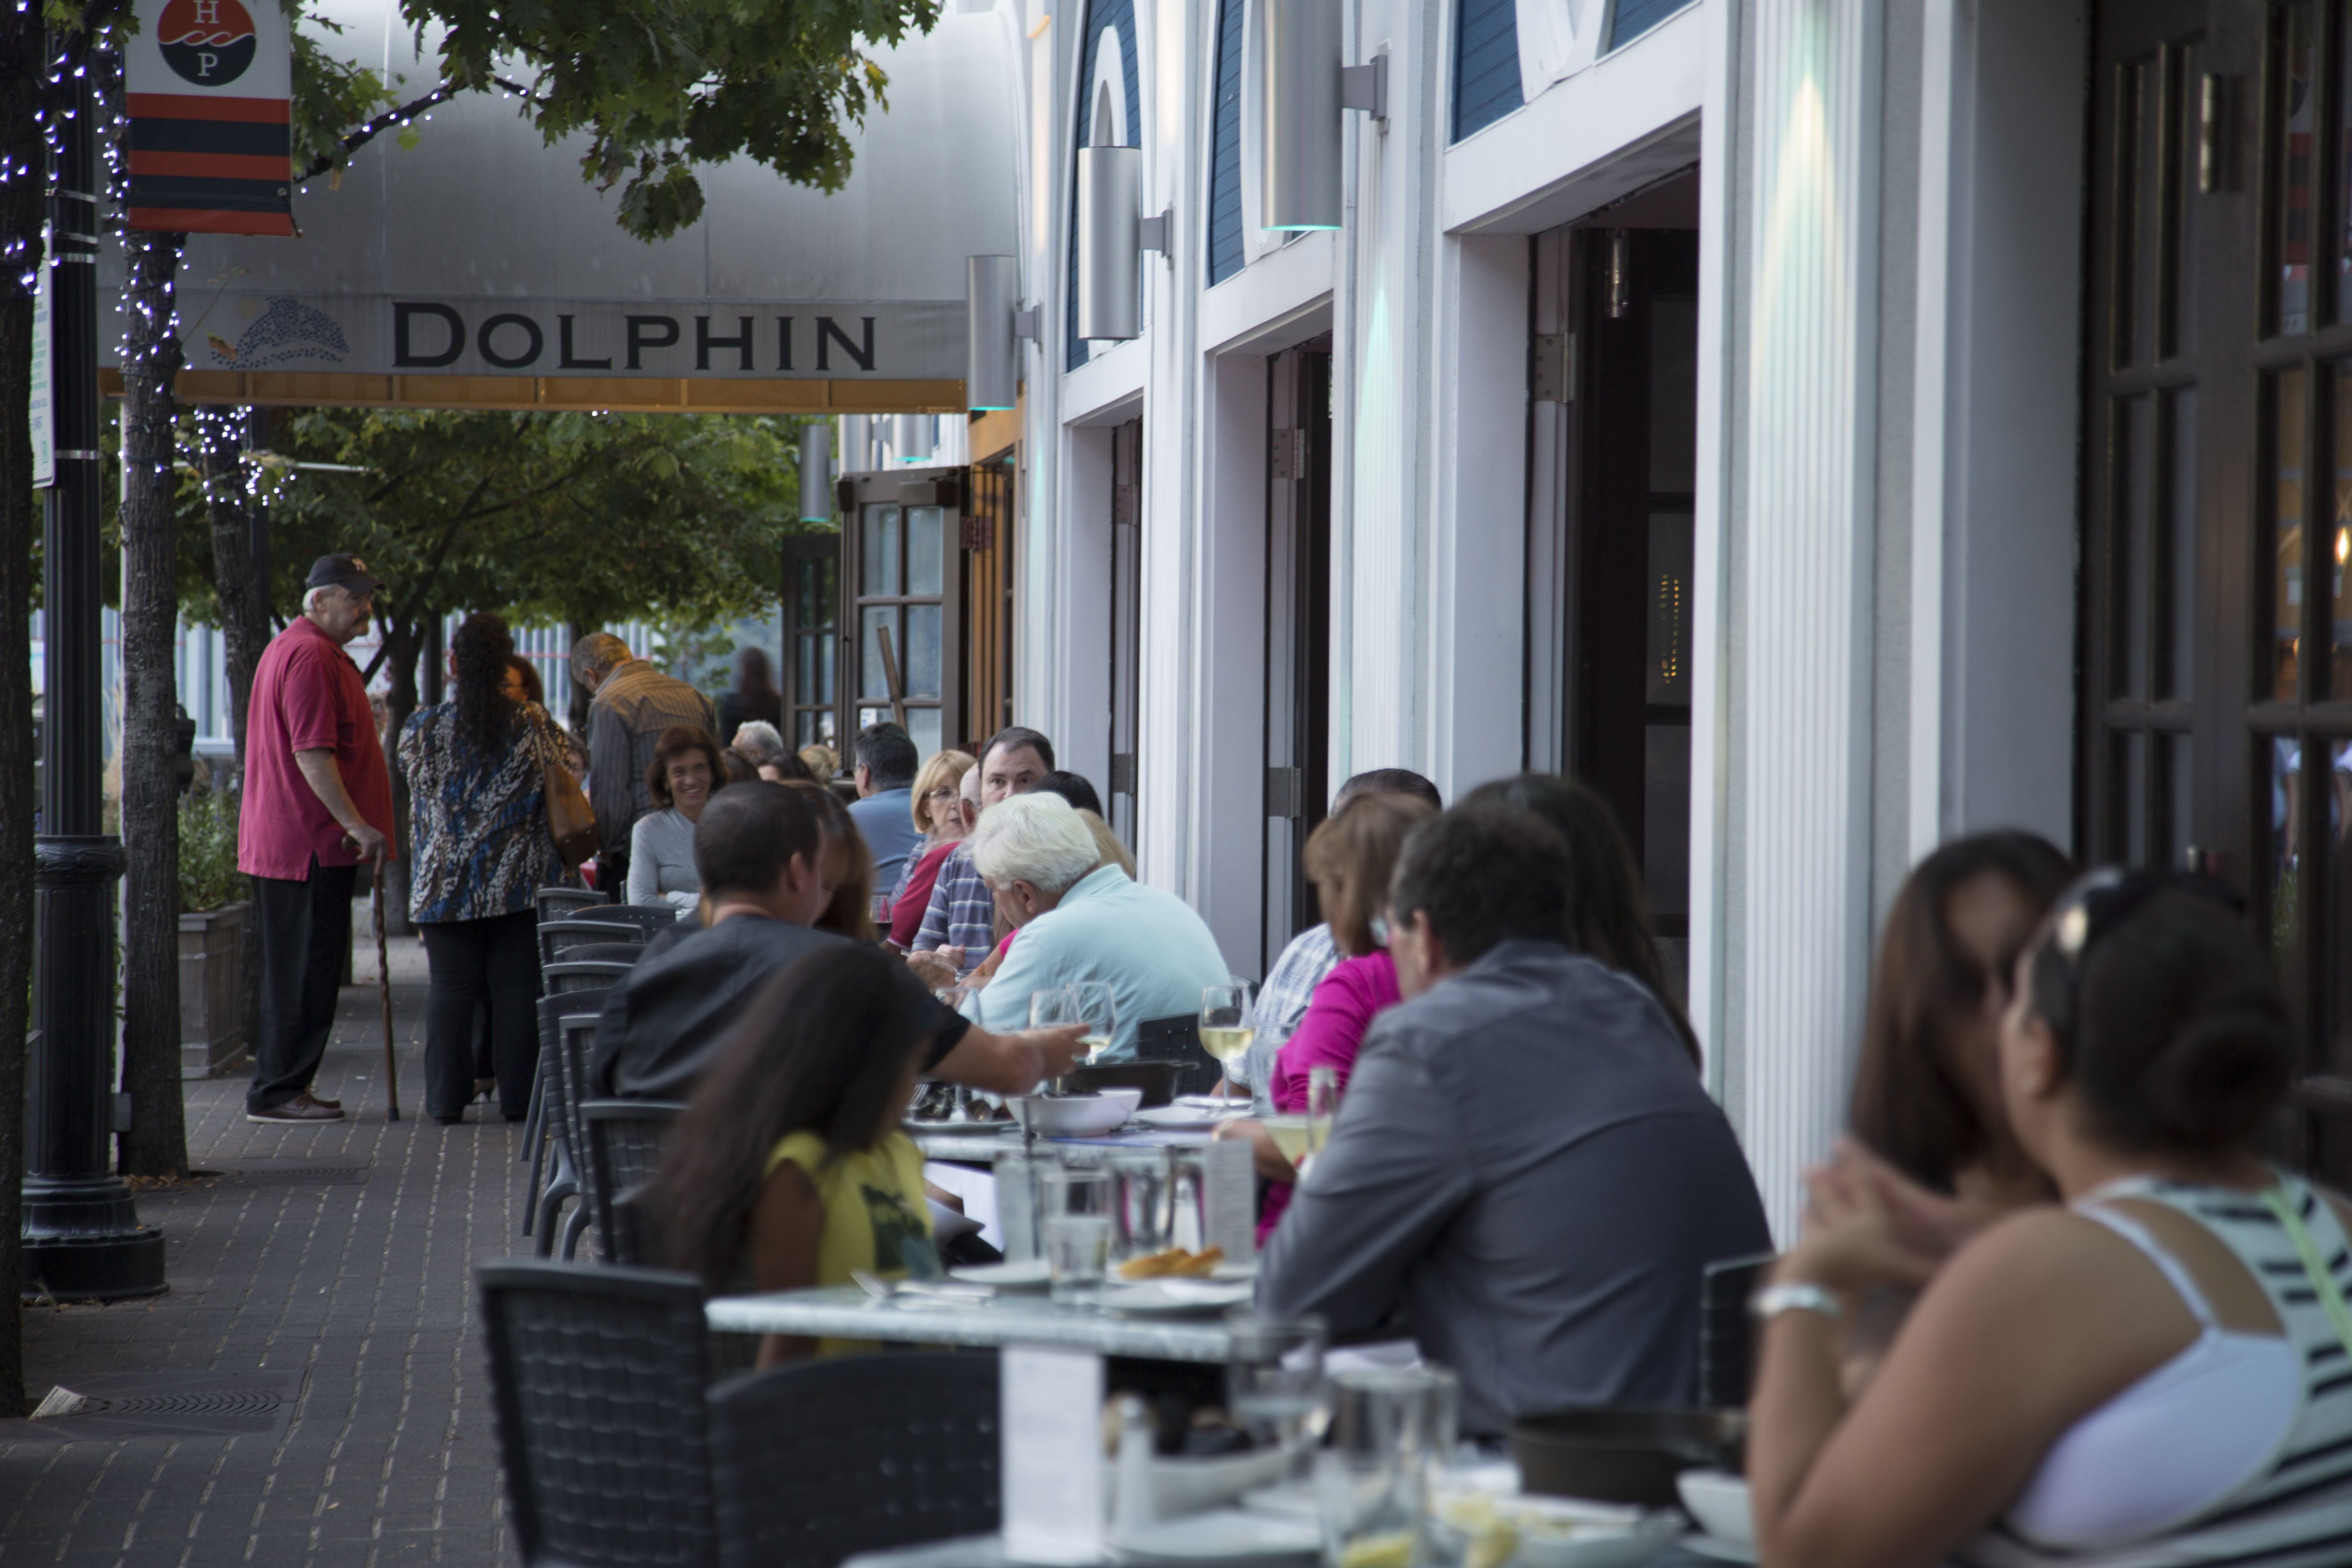 Dolphin Restaurant Located In Yonkers